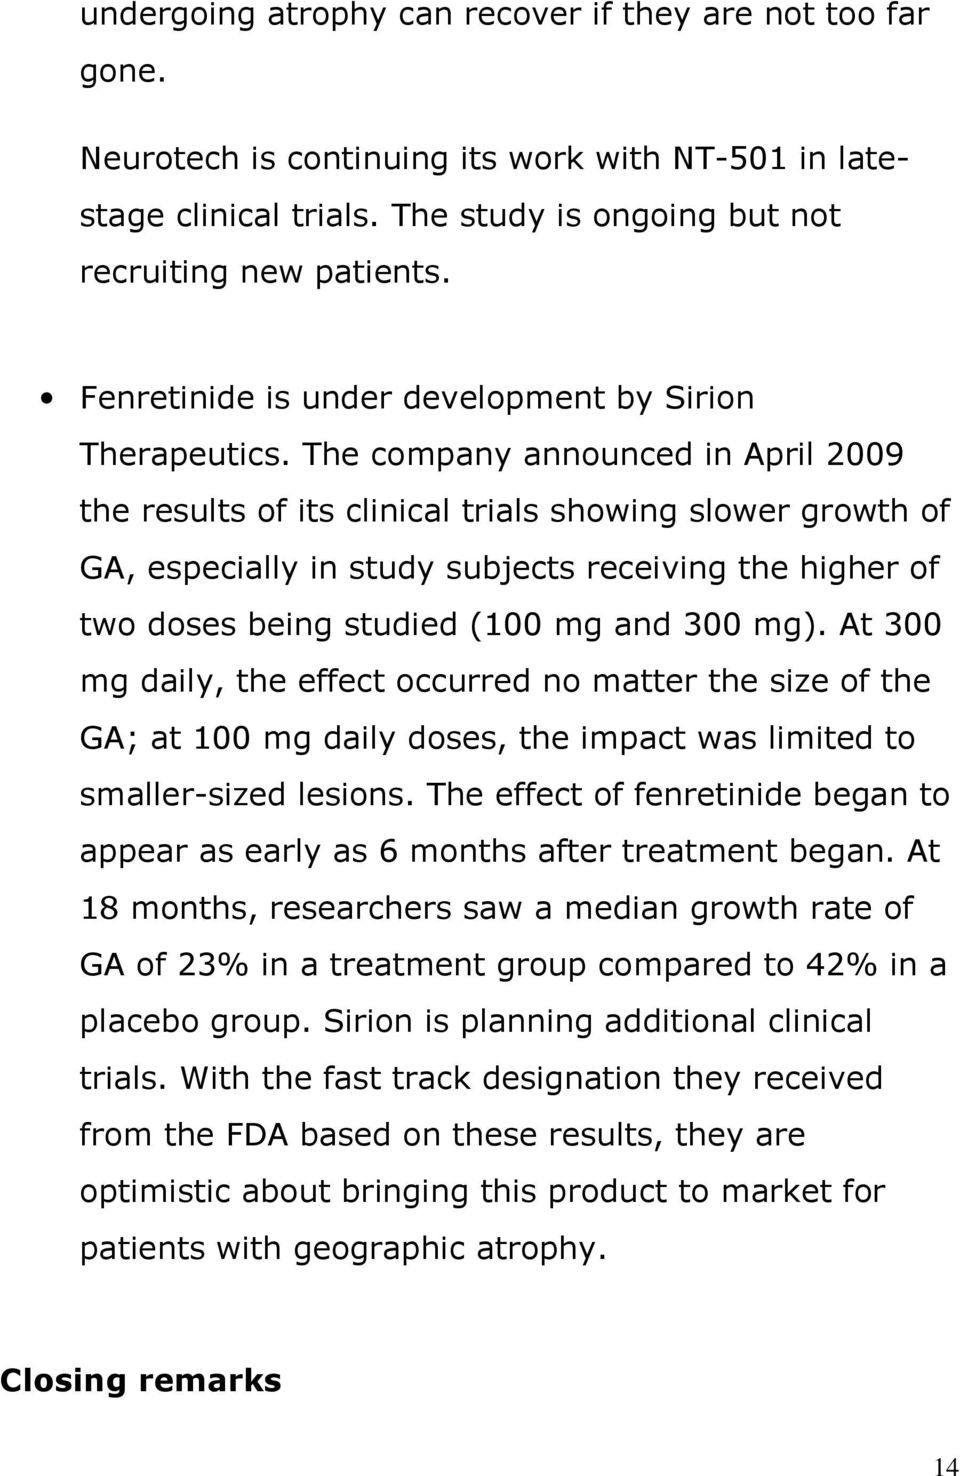 The company announced in April 2009 the results of its clinical trials showing slower growth of GA, especially in study subjects receiving the higher of two doses being studied (100 mg and 300 mg).